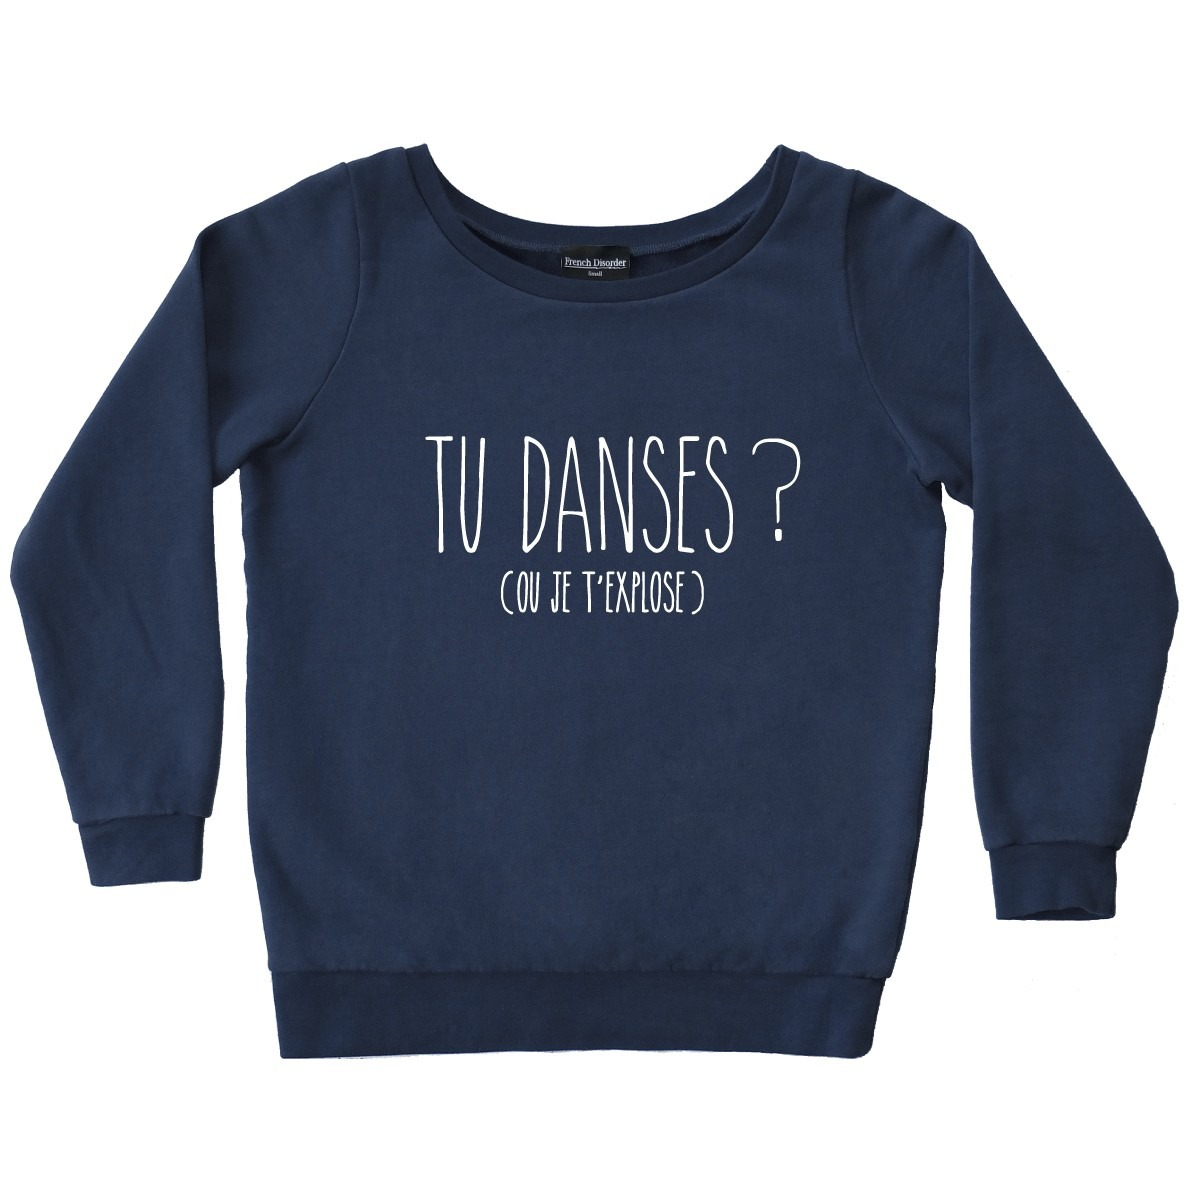 Populaire Sweat-shirts à caractère informatif | Time Out Paris KD31